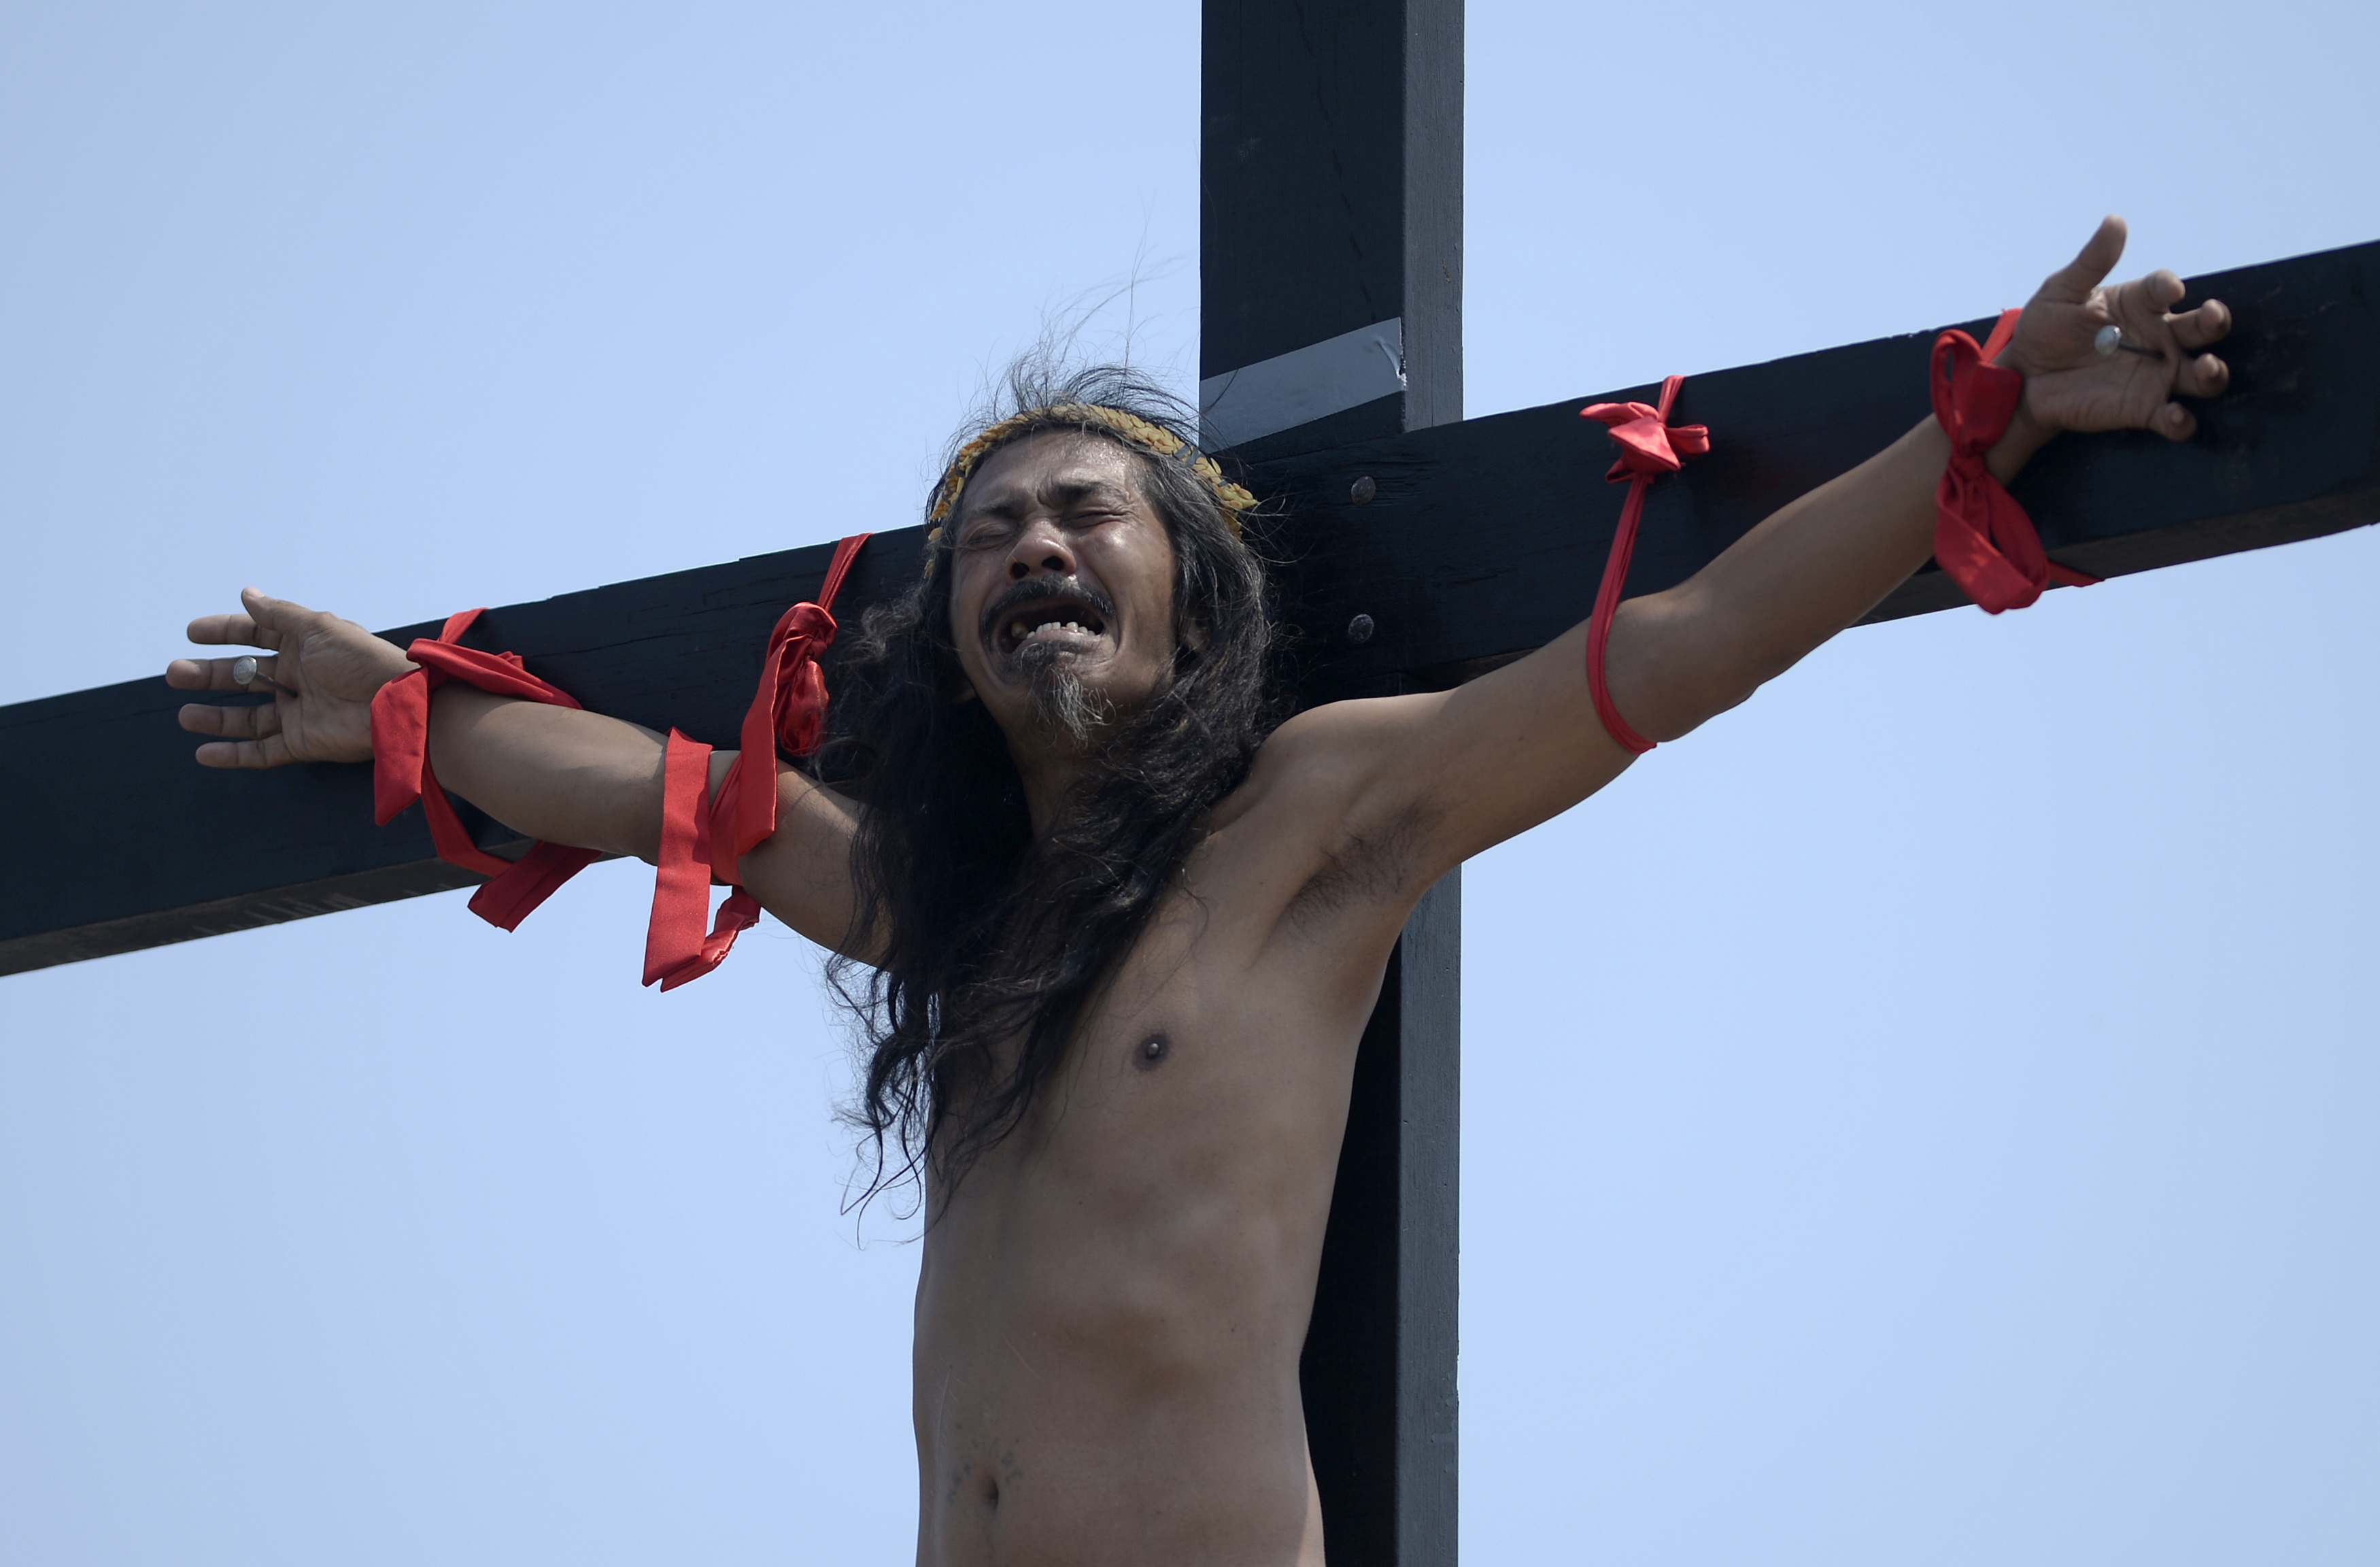 A devotee grimaces as he hangs from a cross after being nailed to it as part of his penitence during the reenactment of the crucifixion of Jesus Christ for Good Friday celebrations ahead of Easter at the village of Cutud near San Fernando, Pampanga province, north of Manila on March 25, 2016. Christian devotees were nailed to crosses in the Philippines on March 25 as Asia's Catholic heartland marked Easter with an extreme display of faith. / AFP / NOEL CELIS